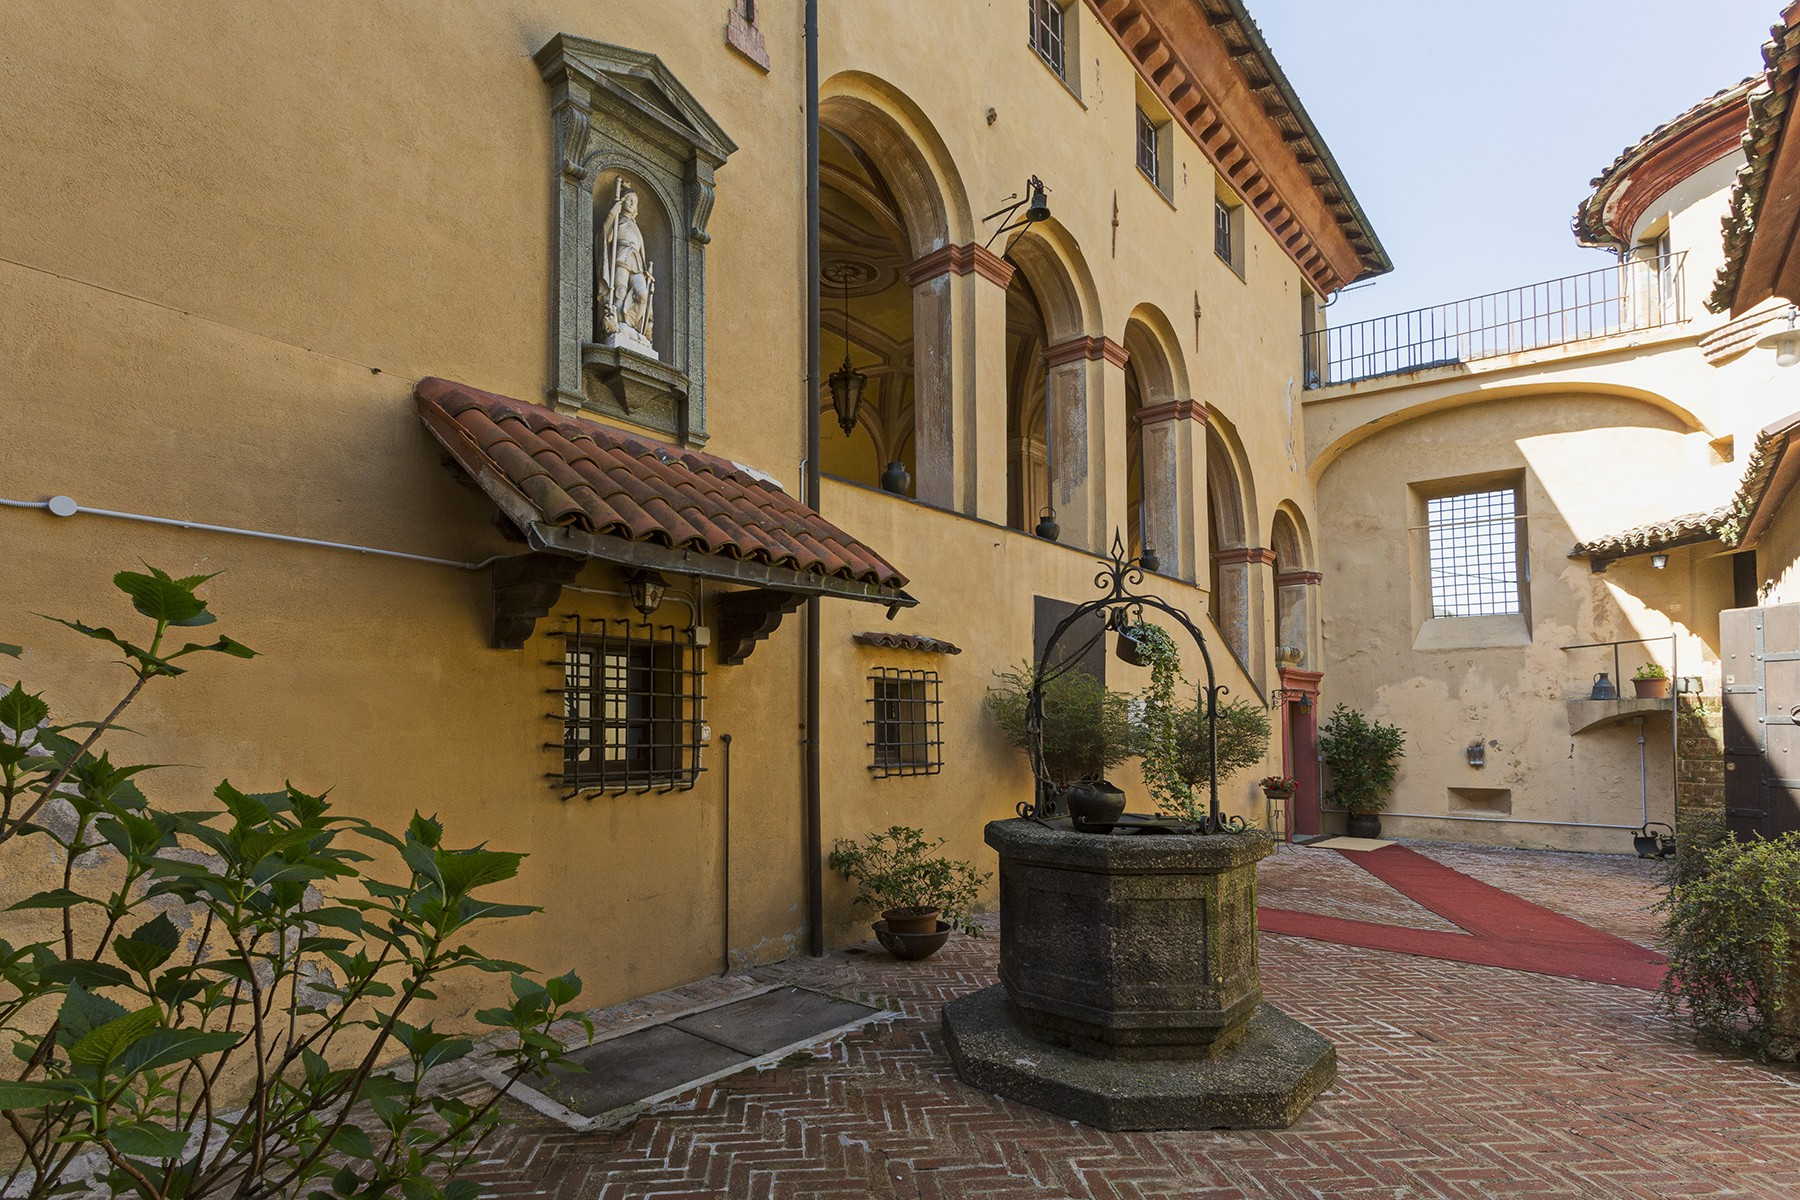 Single Family Home for Sale at Elegant medieval castle with private church Via Piano Other Genoa, Genoa 16017 Italy